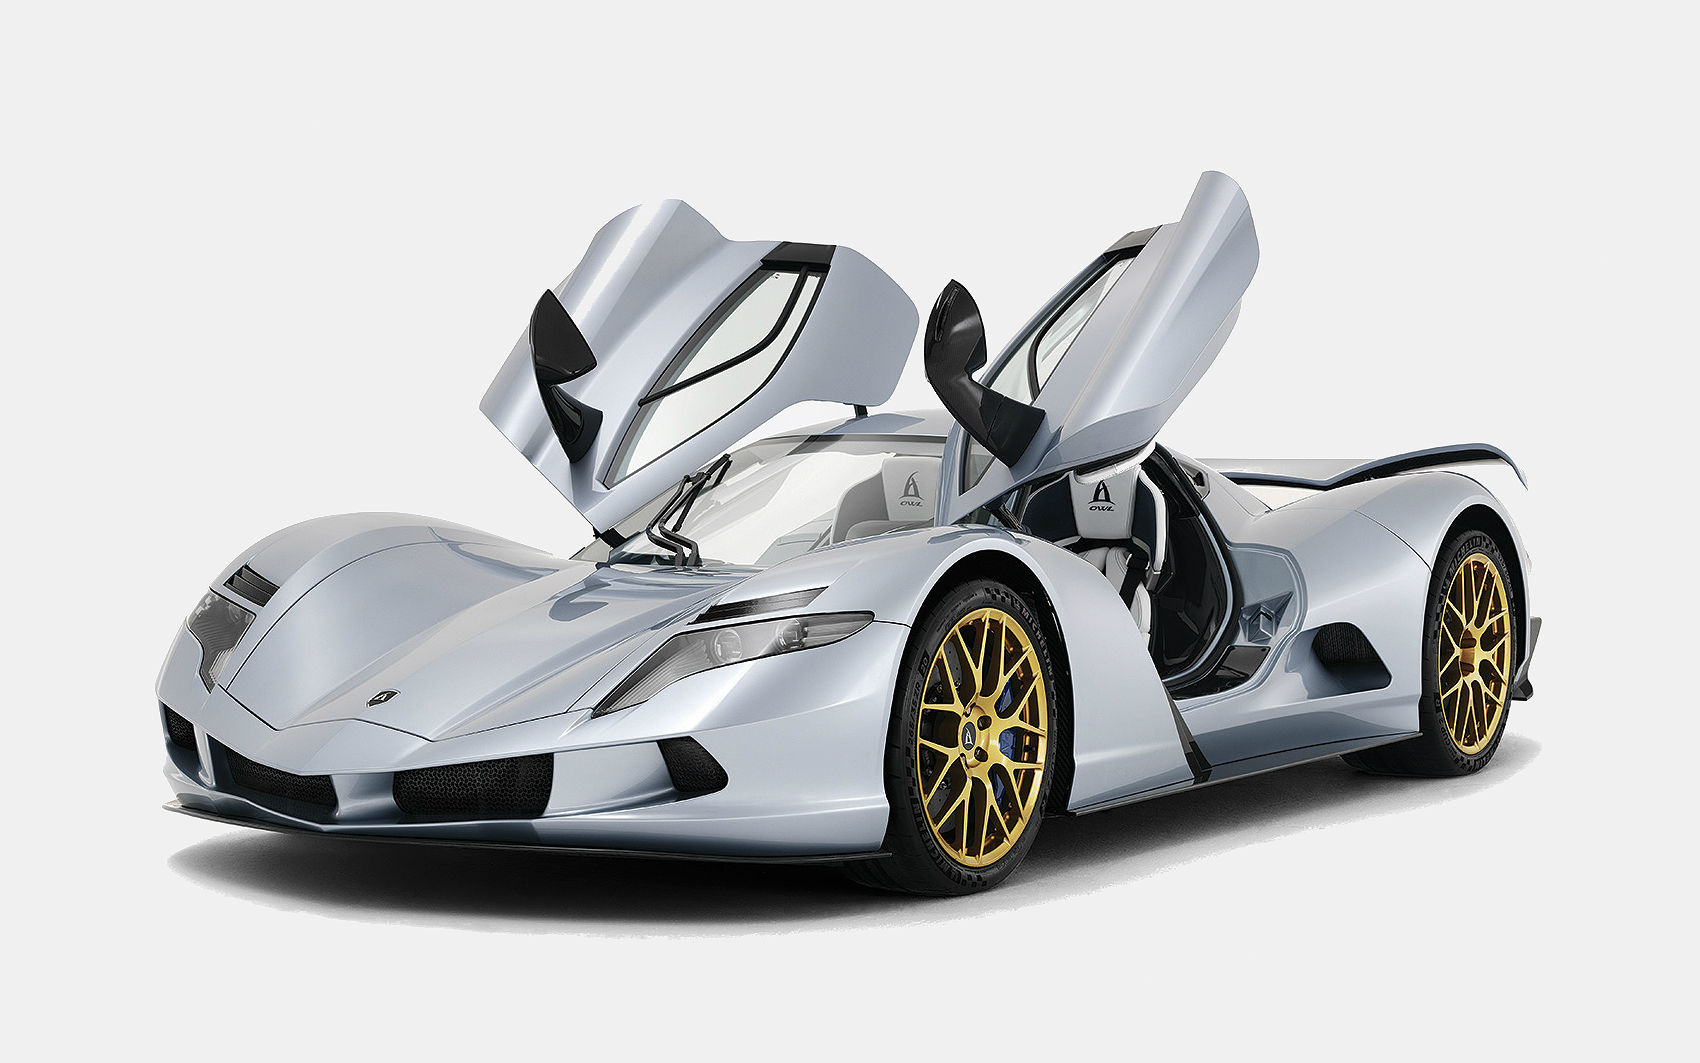 Aspark Full-Electric Hypercar Owl